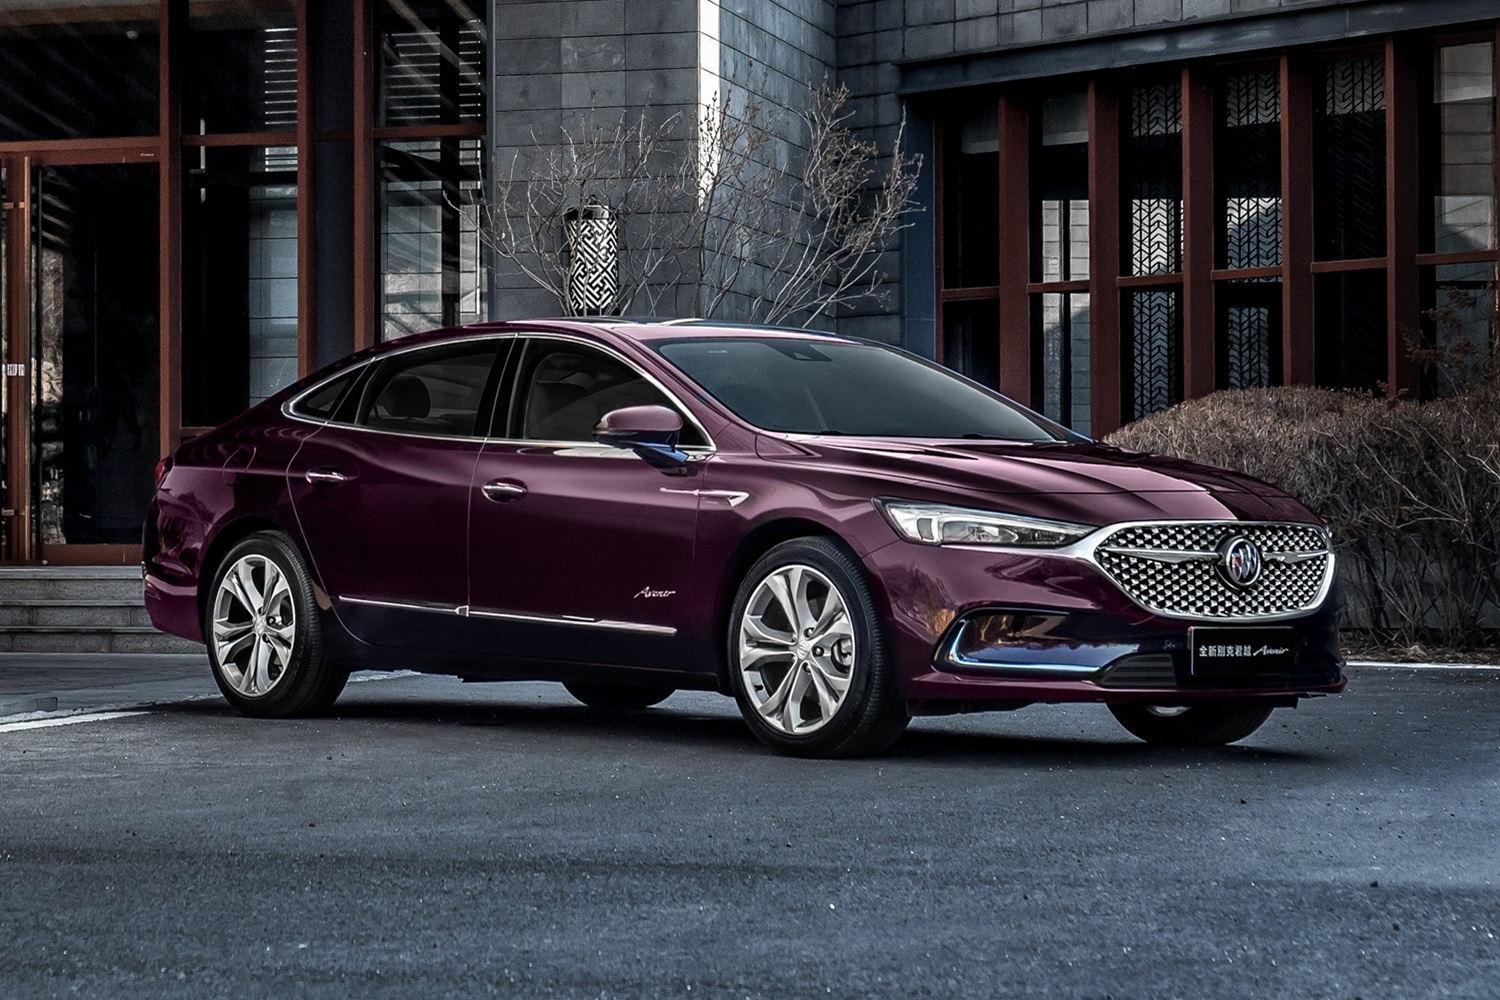 2021 Buick Lacrosse Gets More Refined Than Ever | Gm Authority Picture Of A 2021 Buick Lacrosse